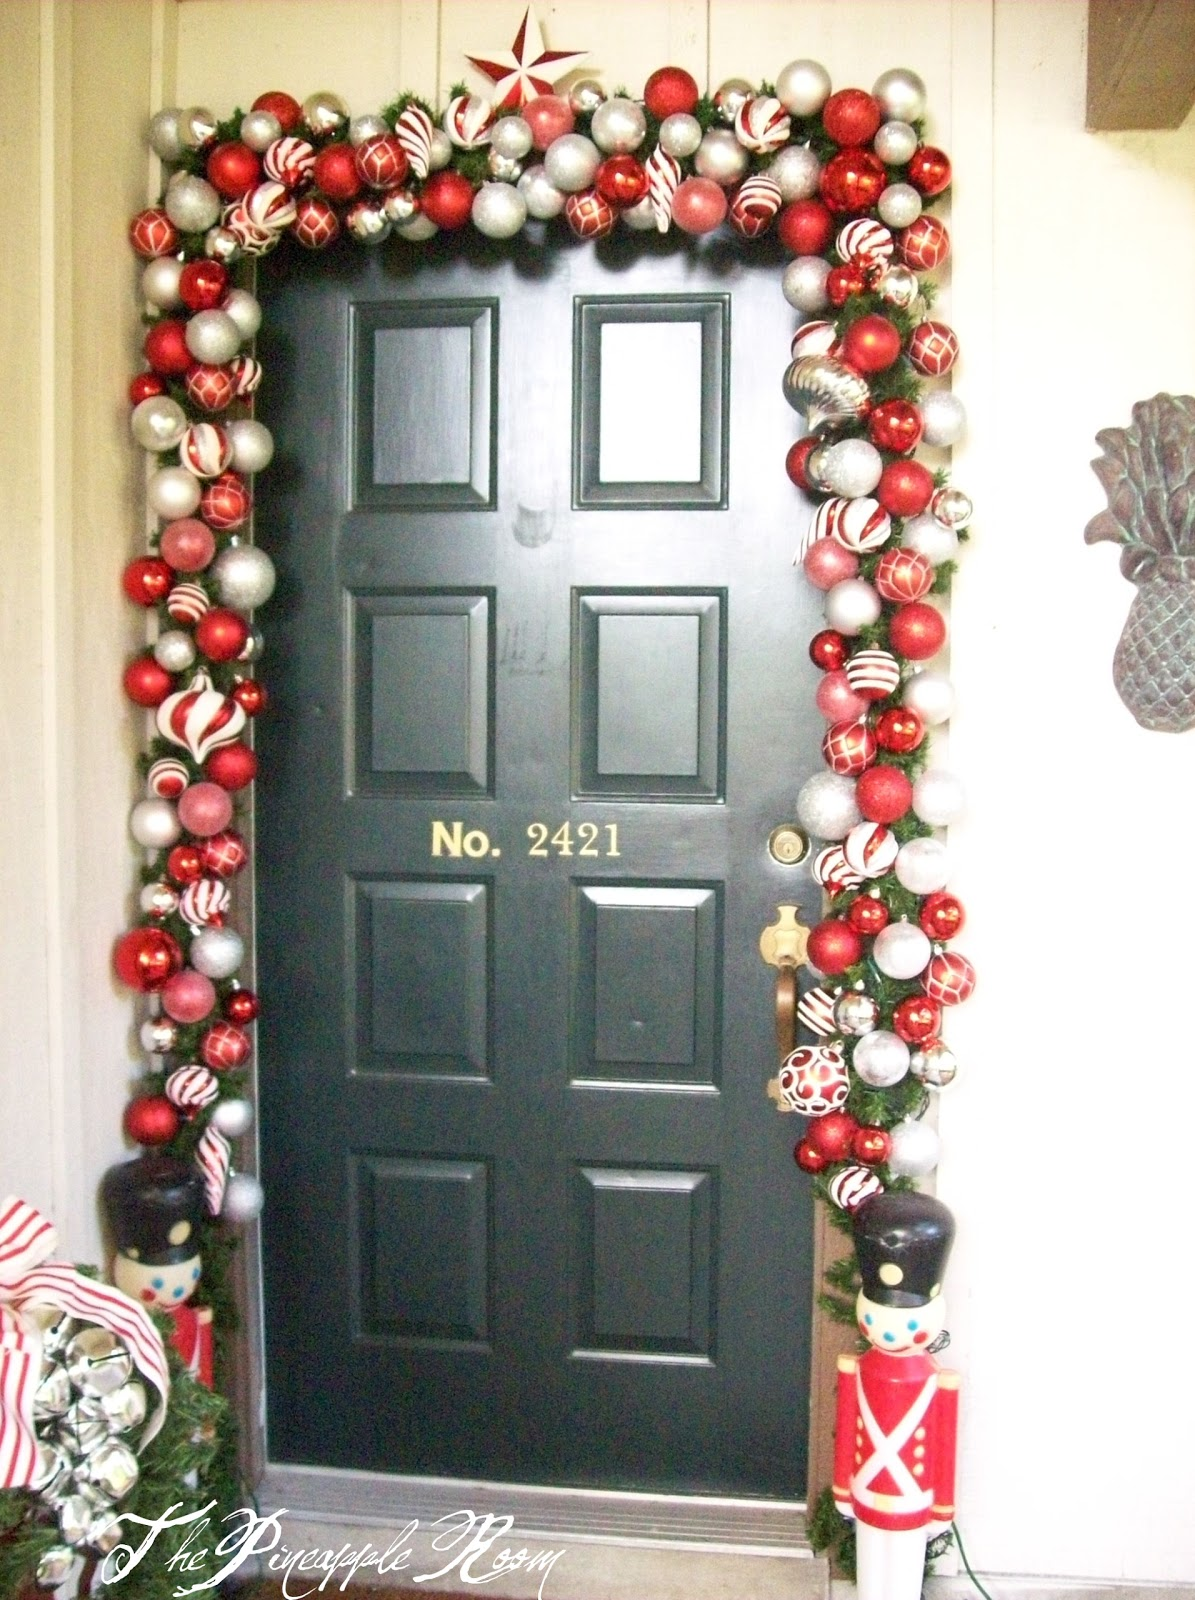 The pineapple room a very merry front door for Door decorations for christmas